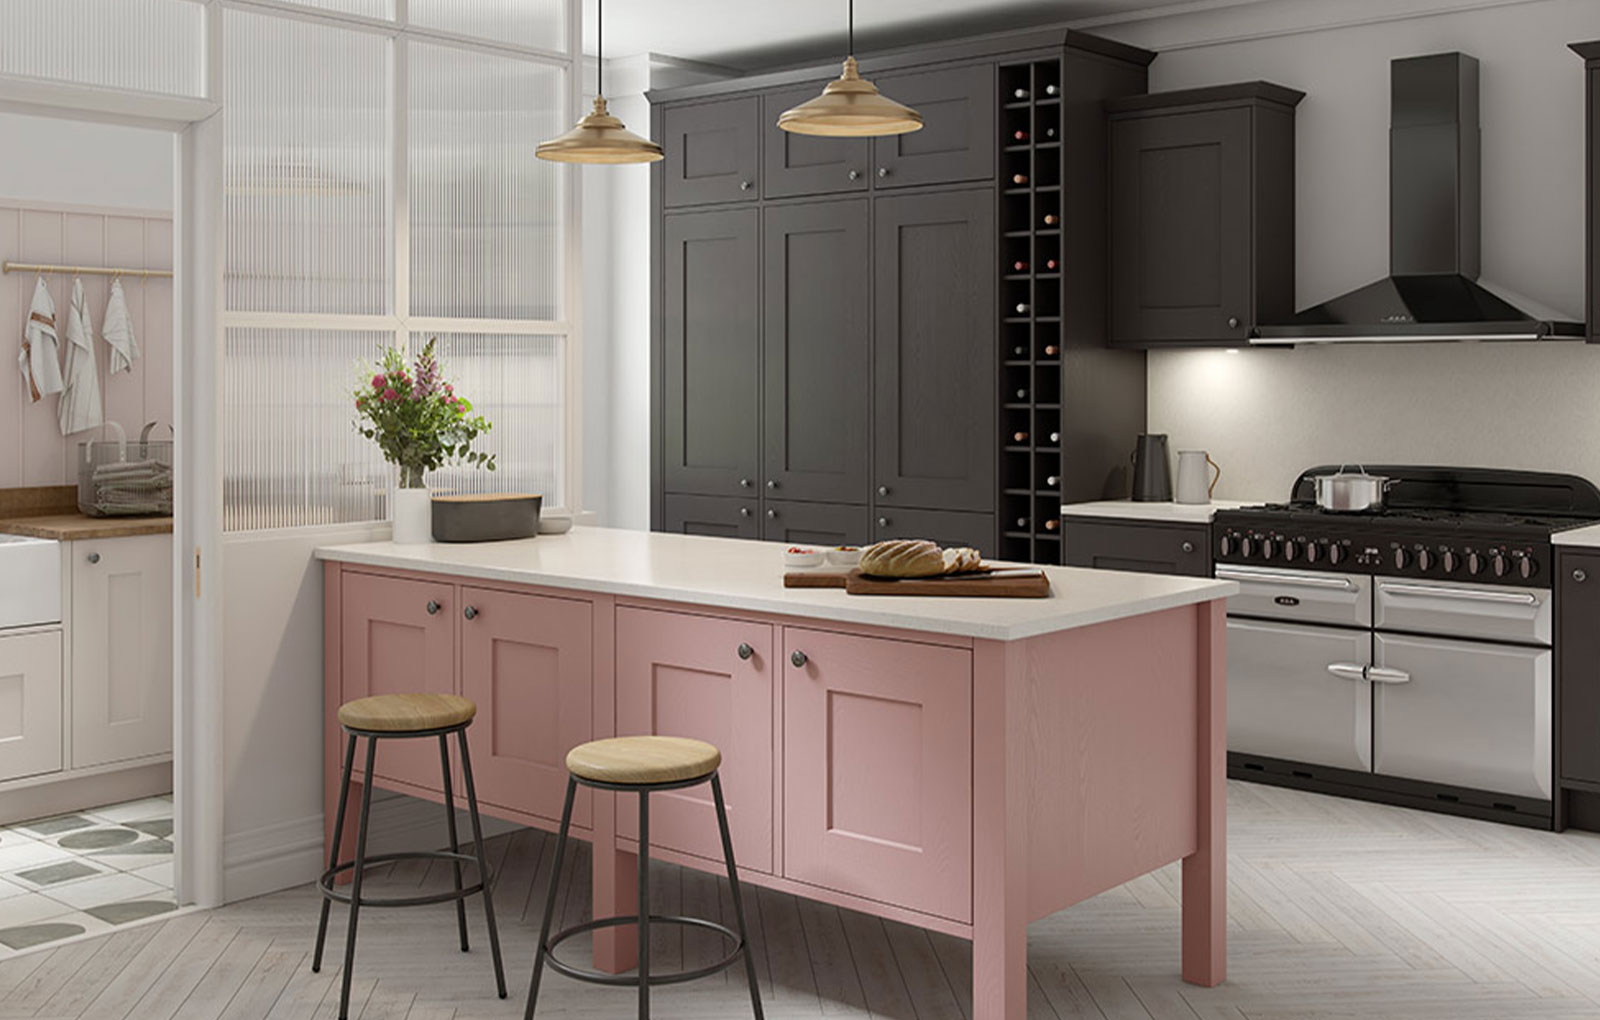 Classic shaker kitchen with dark kitchen cabinets and pink kitchen island